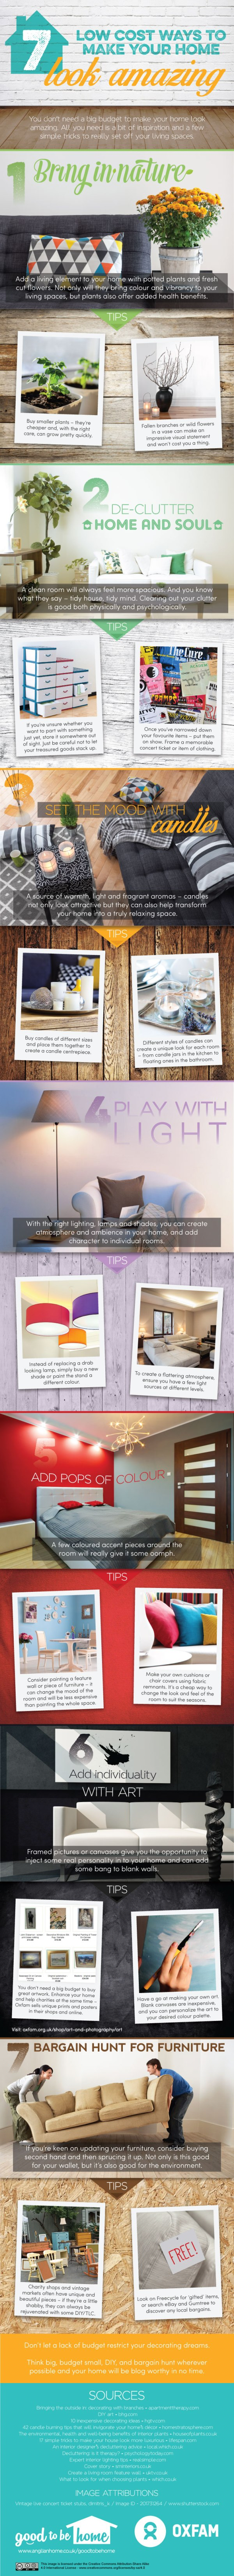 You don't need a big budget to make your home look amazing. All you need is a bit of inspiration and a few simple tricks to really set off your living spaces. Check out all these 7 low cost ways to make your home look amazing via tipsaholic.com #home #decor #house #interiordesign #homedecor